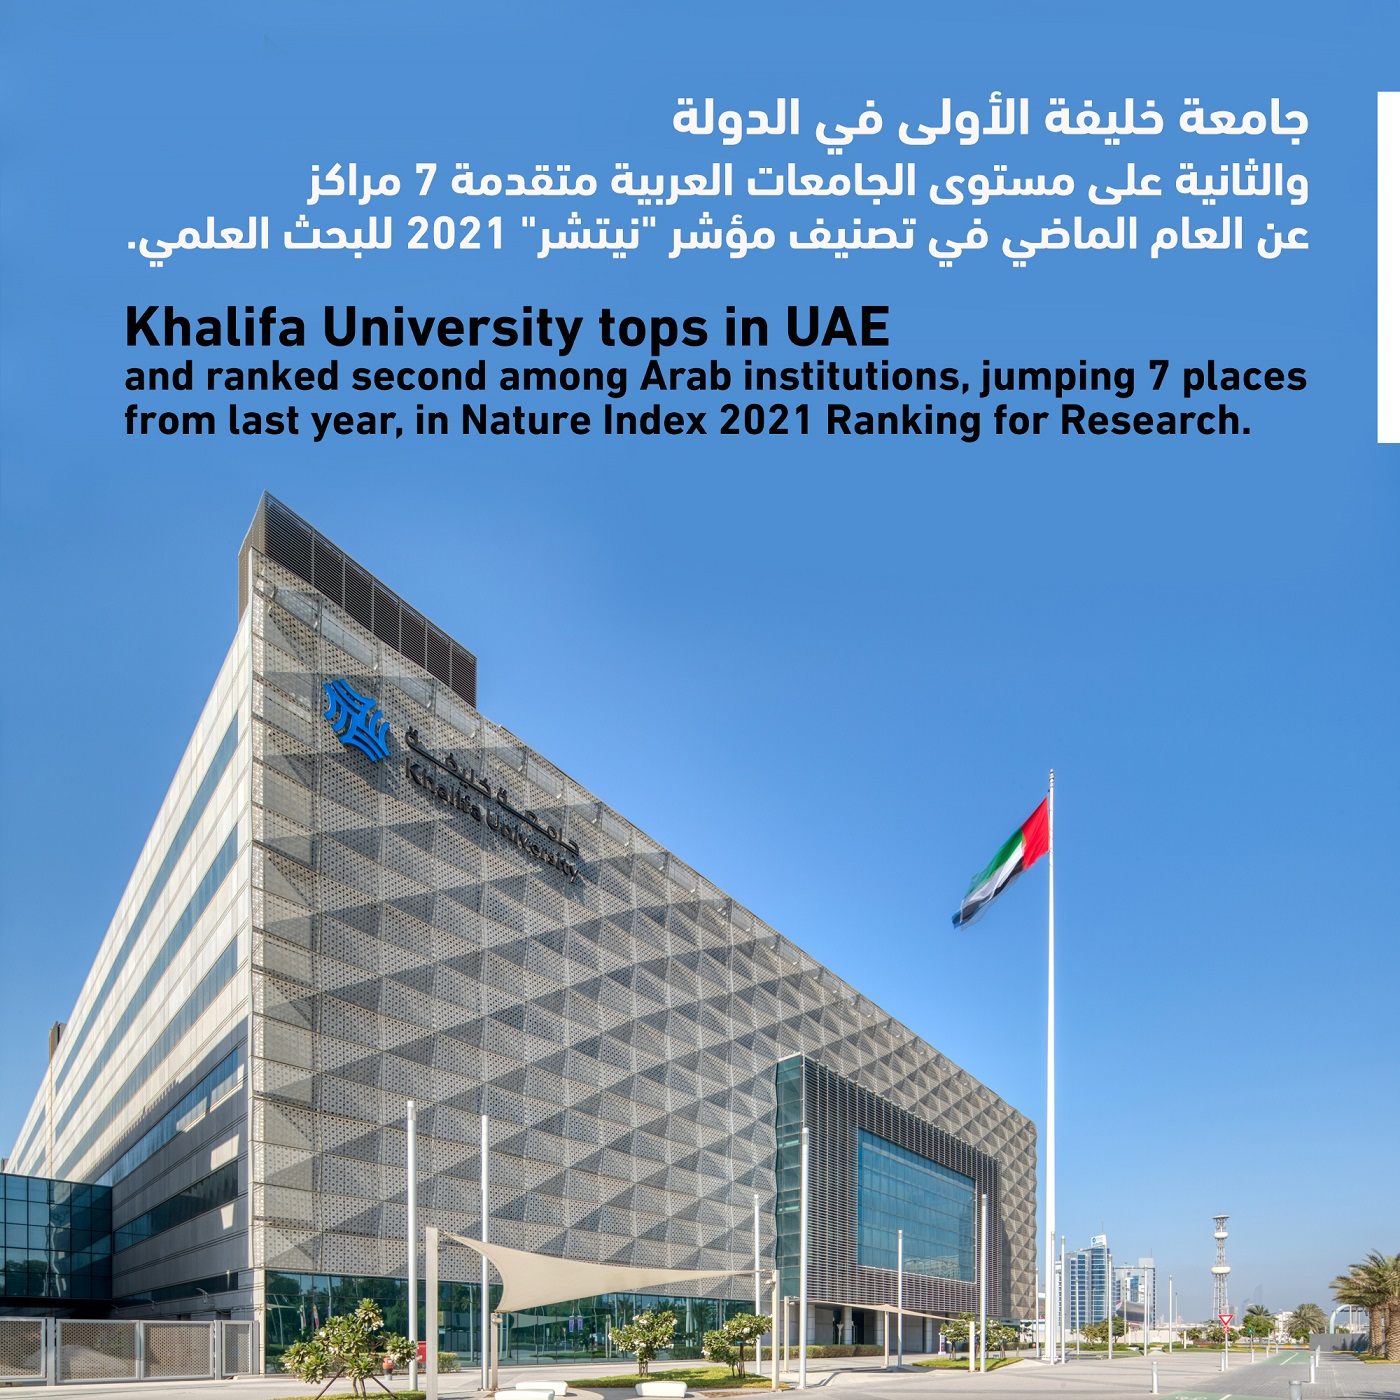 Khalifa University Tops in UAE and Ranked Second in Arab World in Nature Index 2021 Ranking for Research